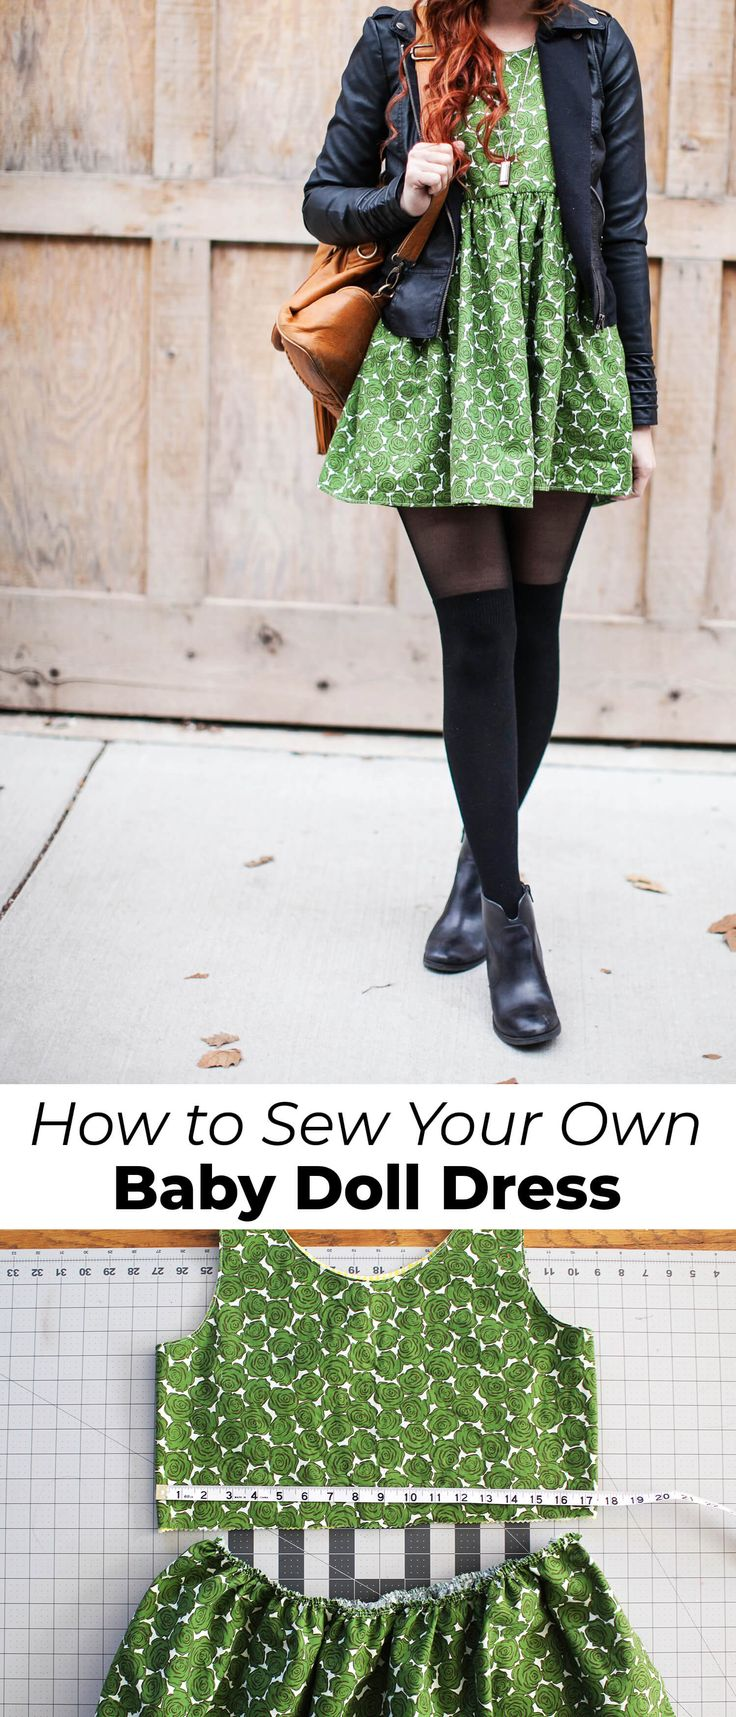 How to Make a Baby Doll Dress – A Beautiful Mess